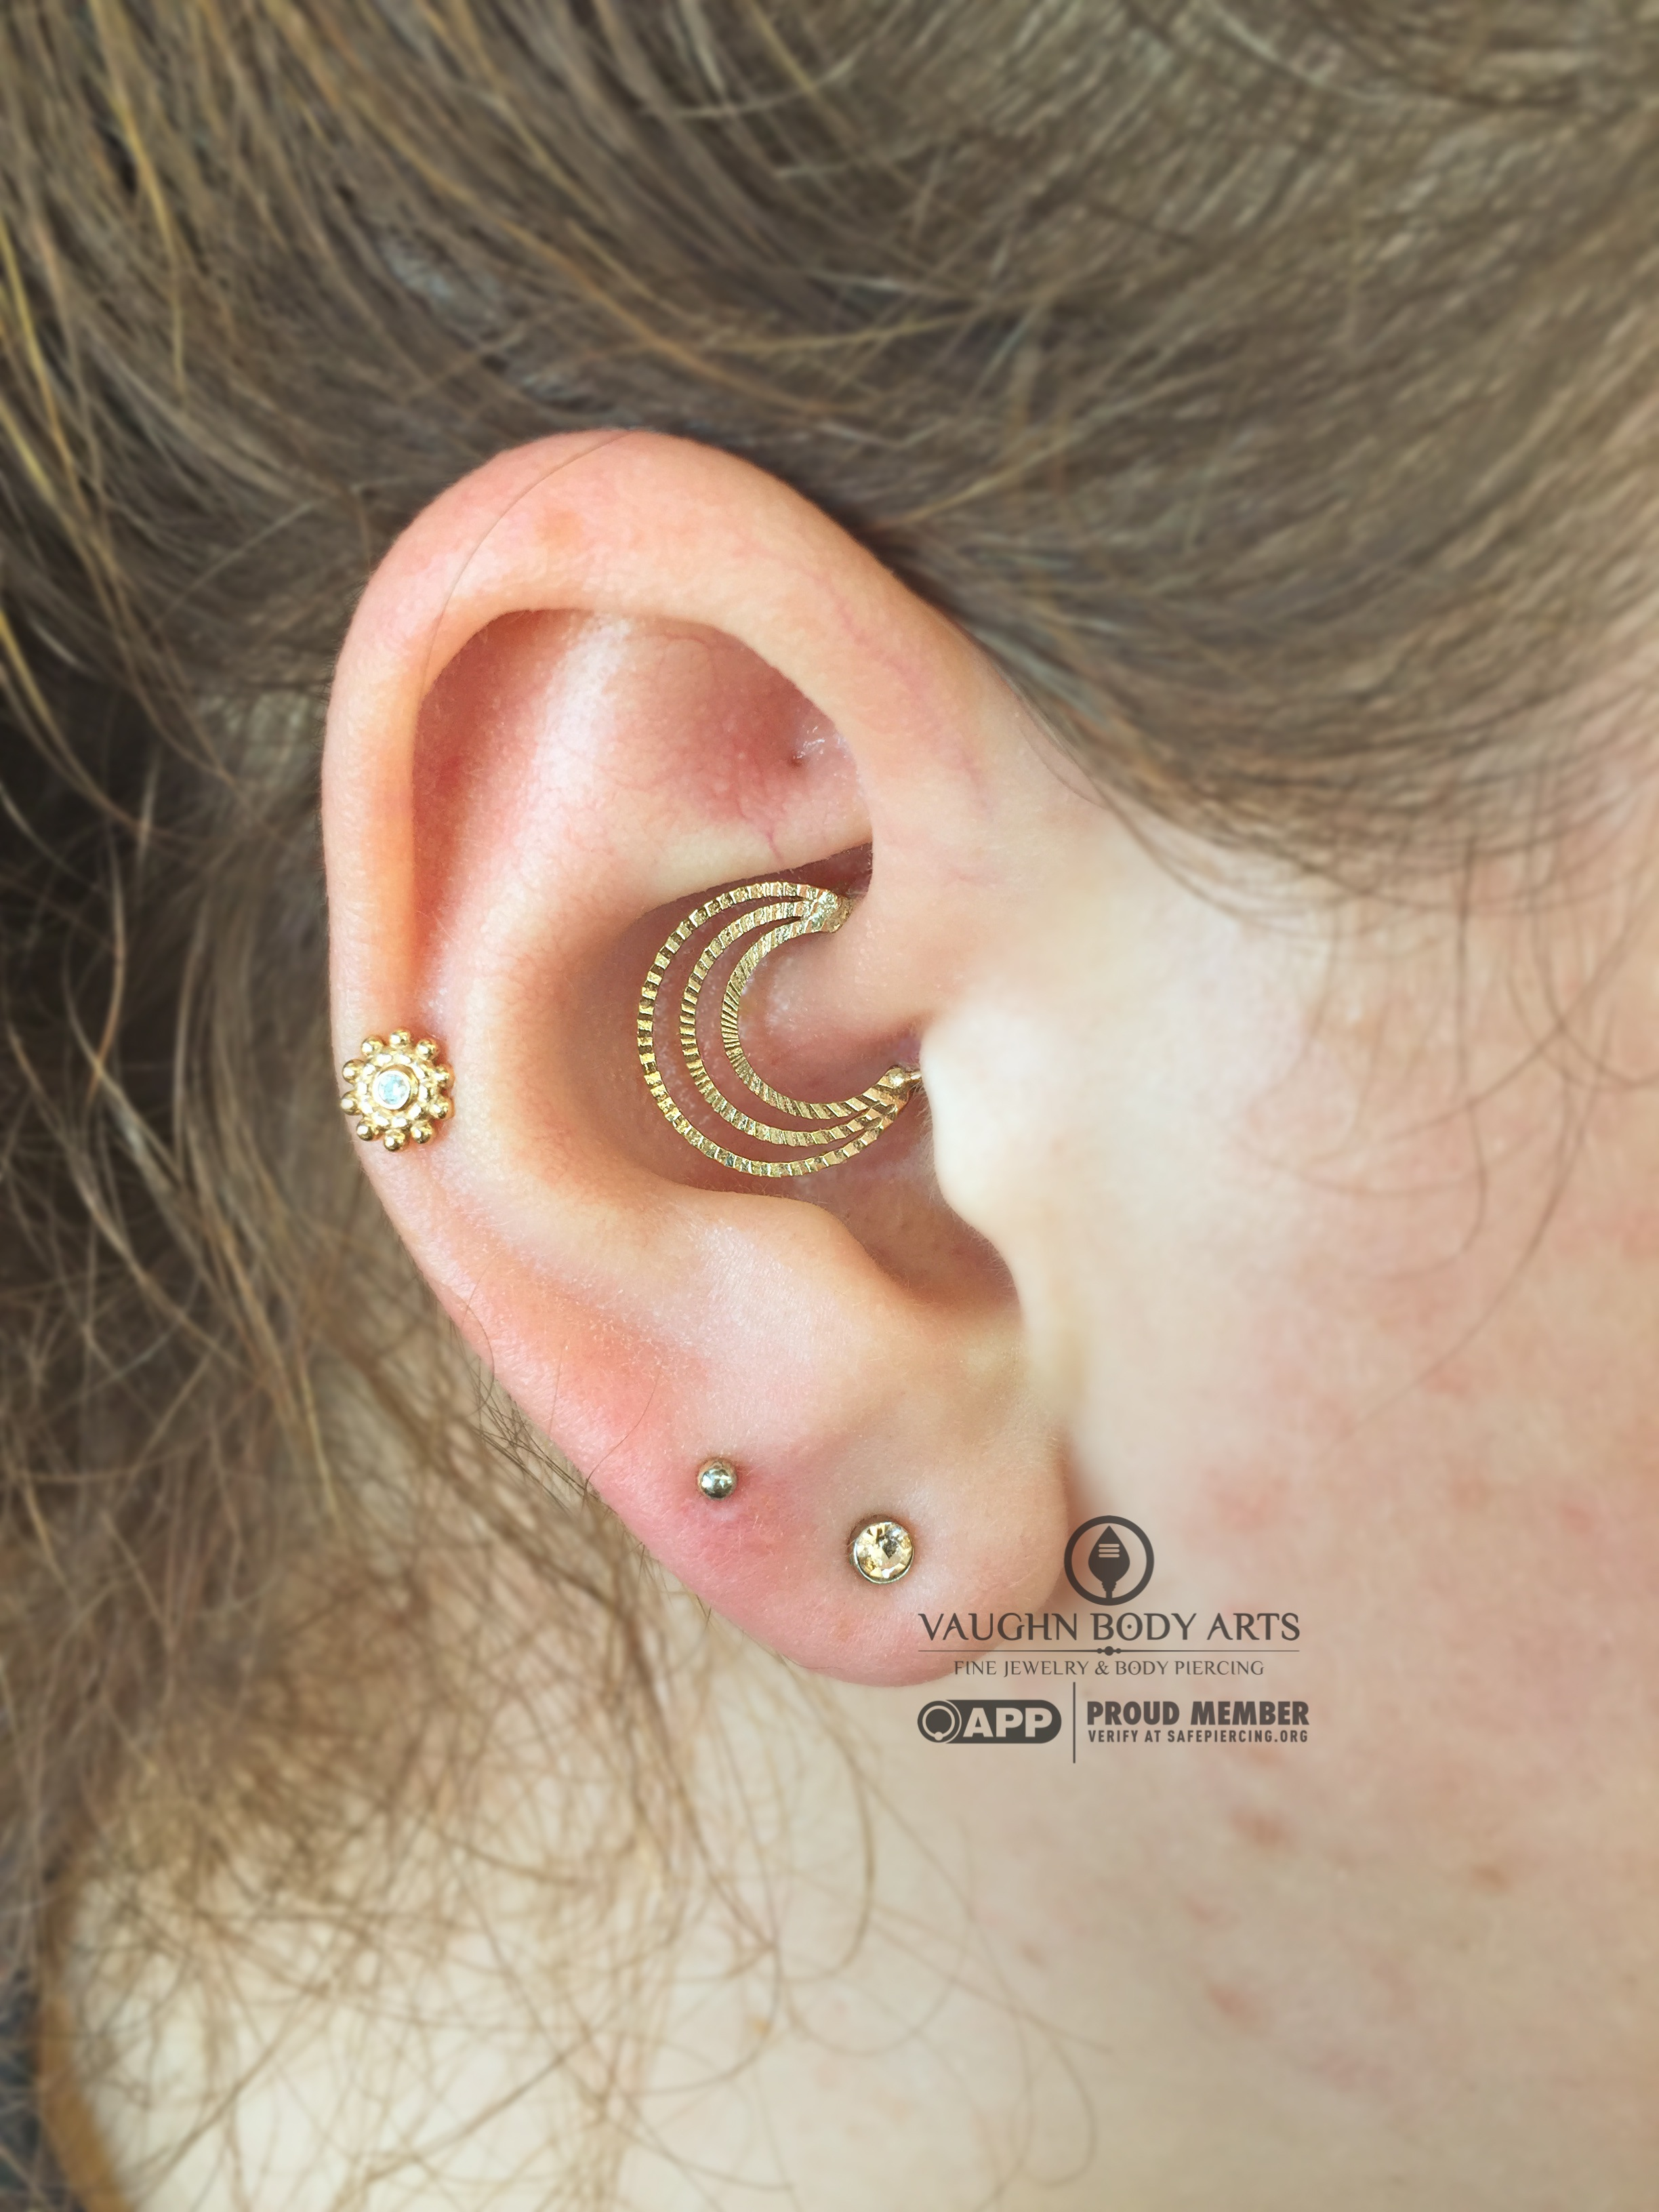 Daith piercing featuring 14k yellow gold jewelry from Quetzalli Jewelry.